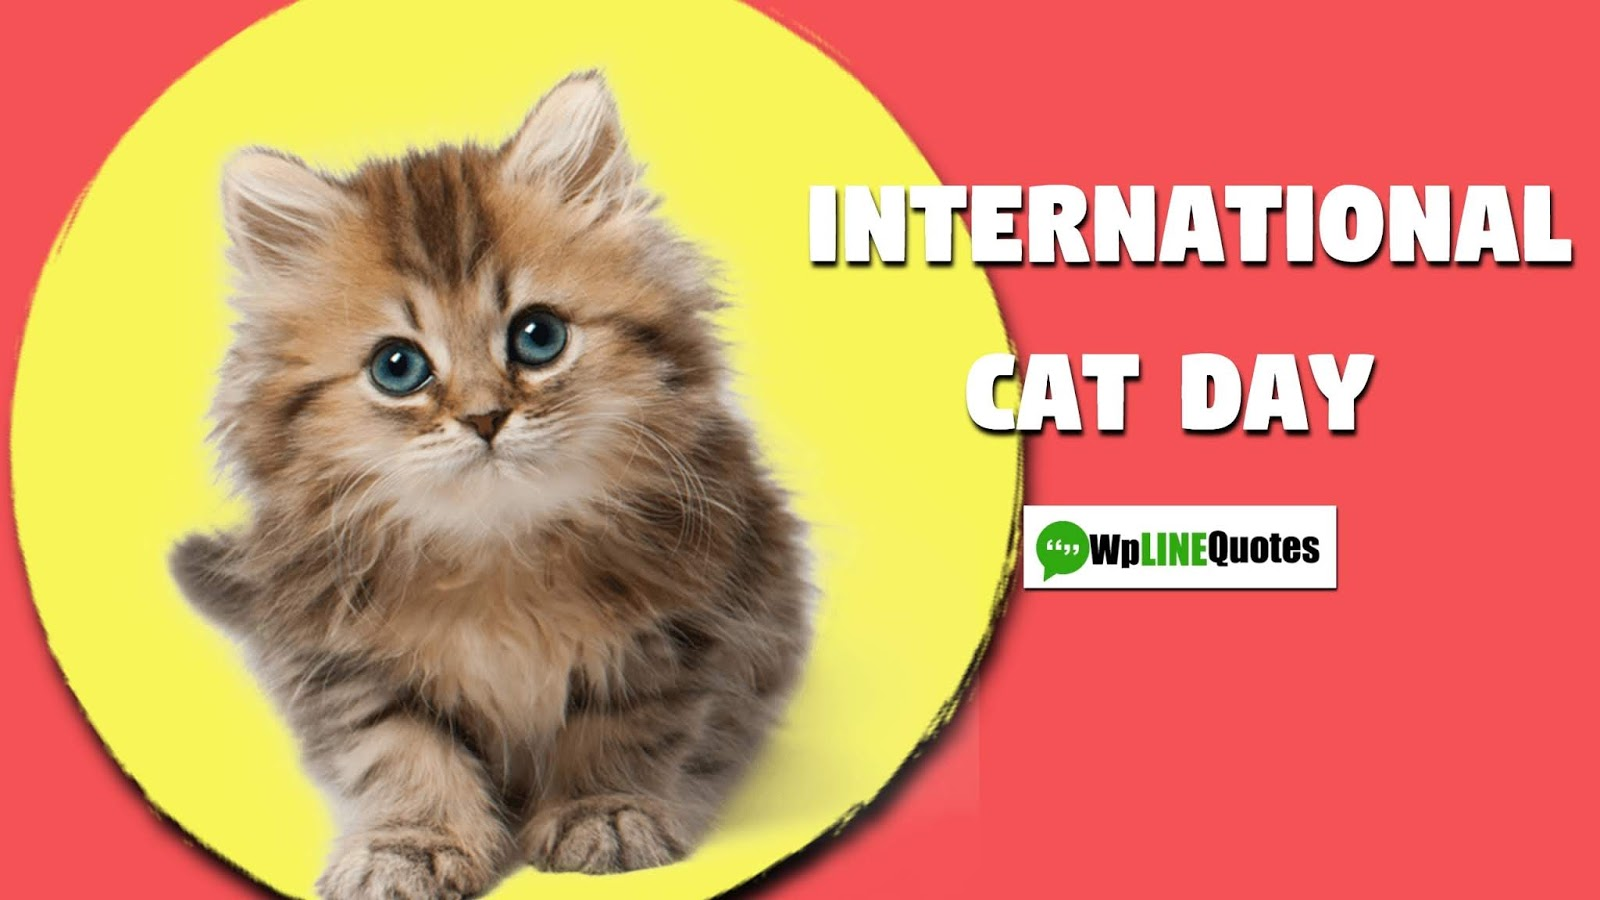 (New) International Cat Day 2019 Quotes, Status, Wishes